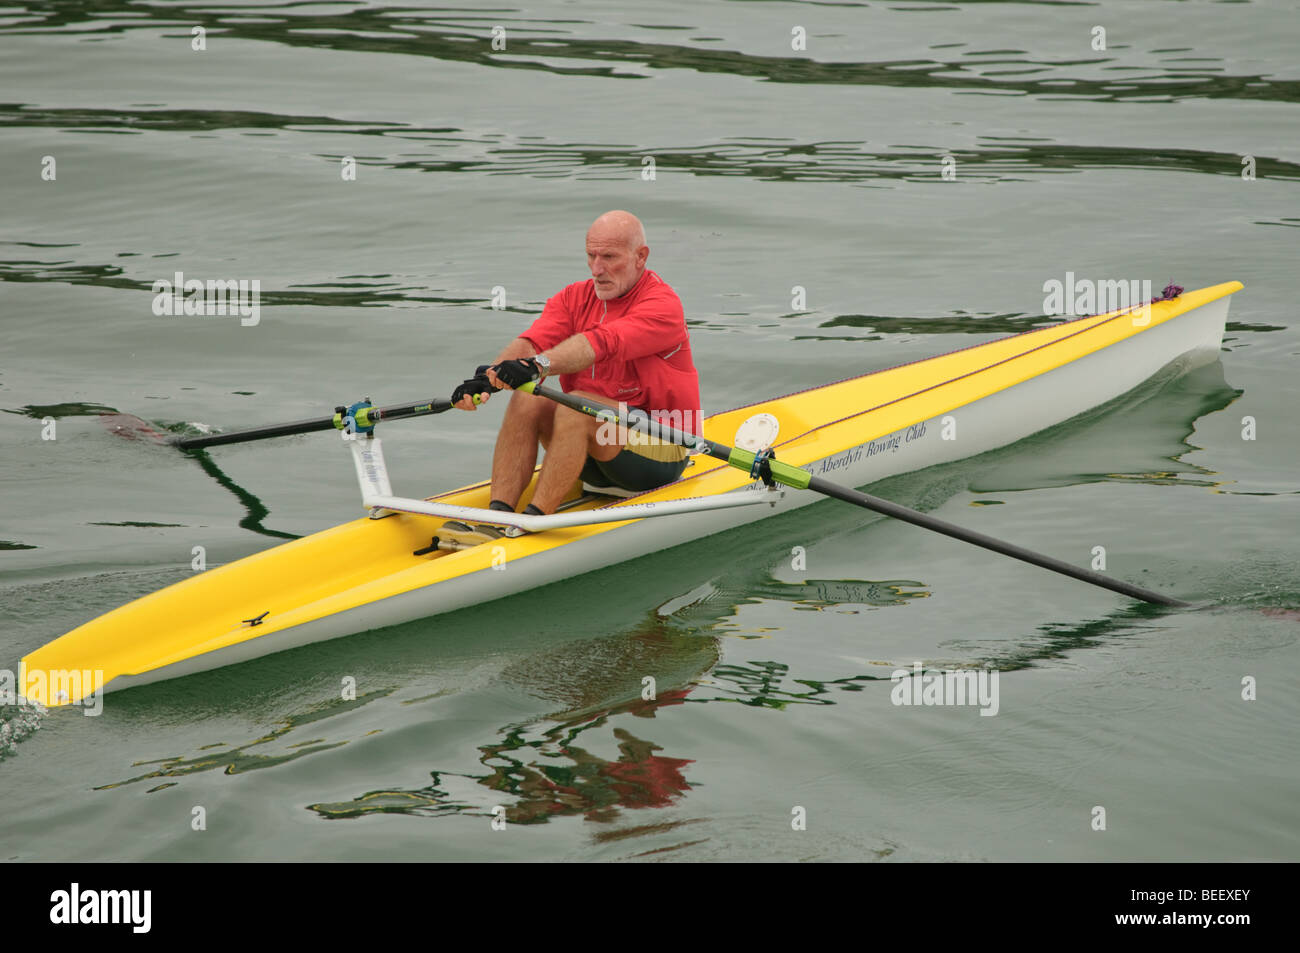 A healthy fit middle aged man sculling alone in a single seater solo scull rowing boat canoe kayak, UK - Stock Image